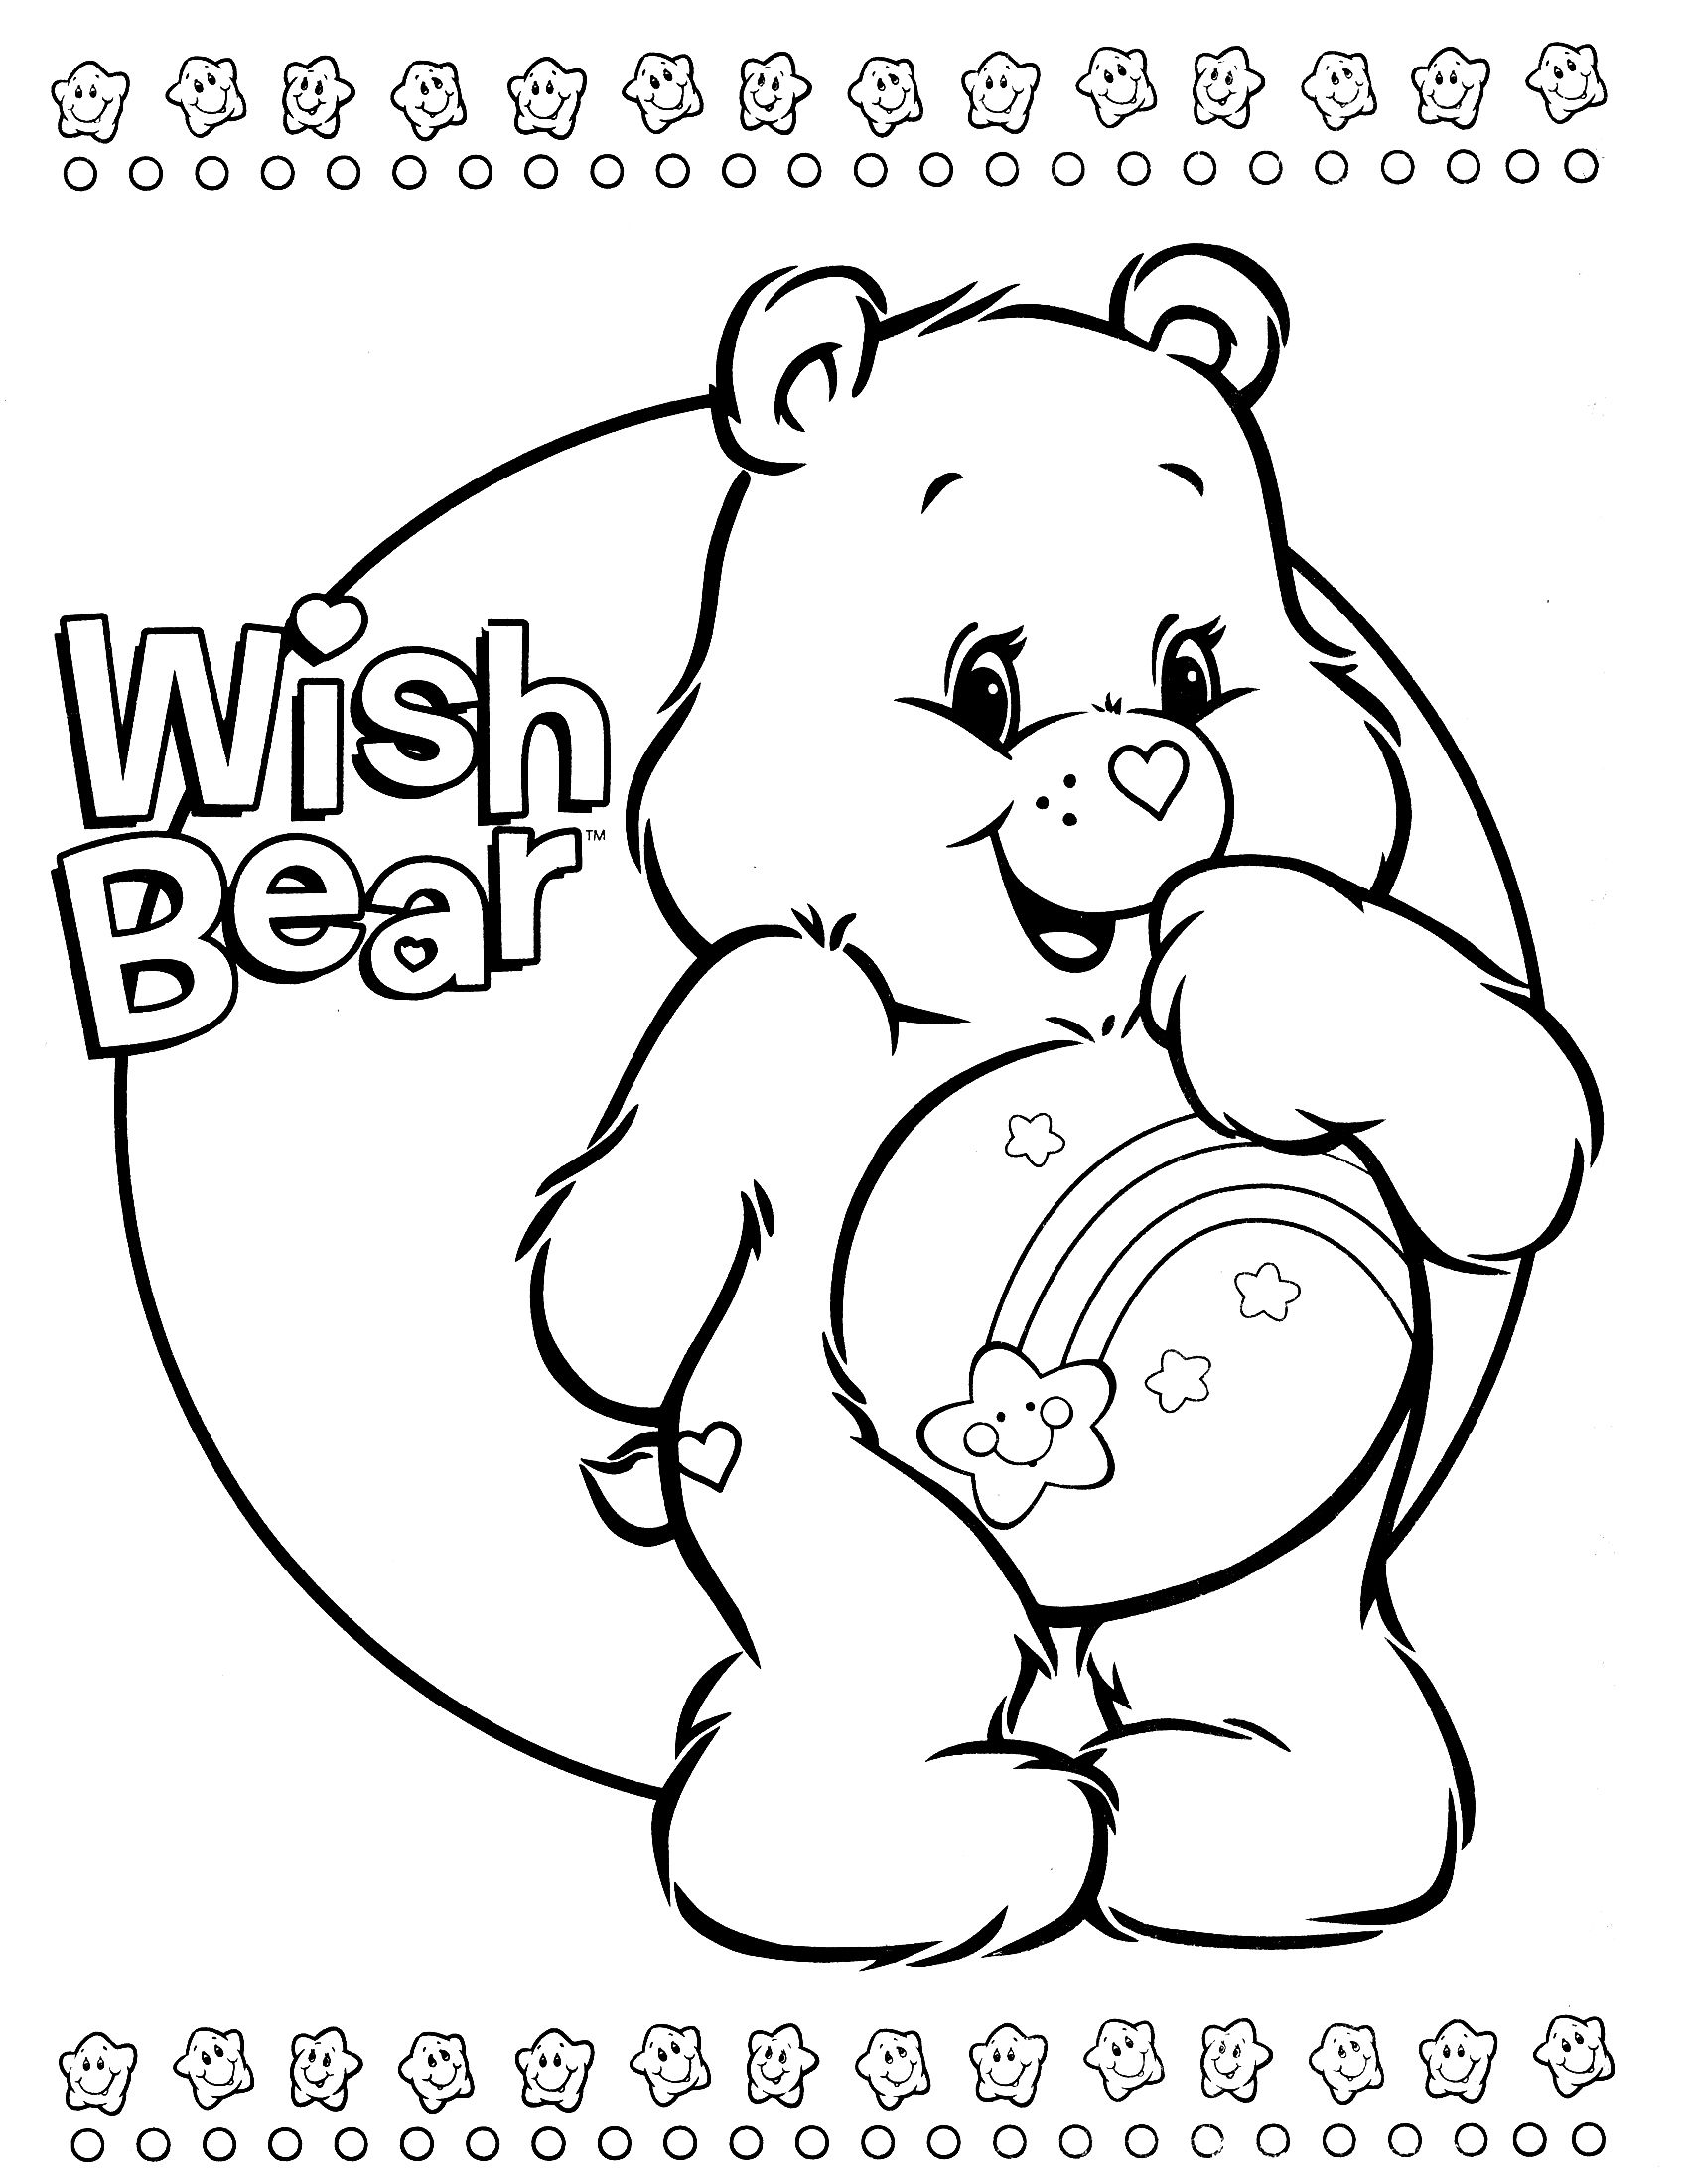 Care Bears 11 Bear Coloring Pages Disney Coloring Pages Coloring Books